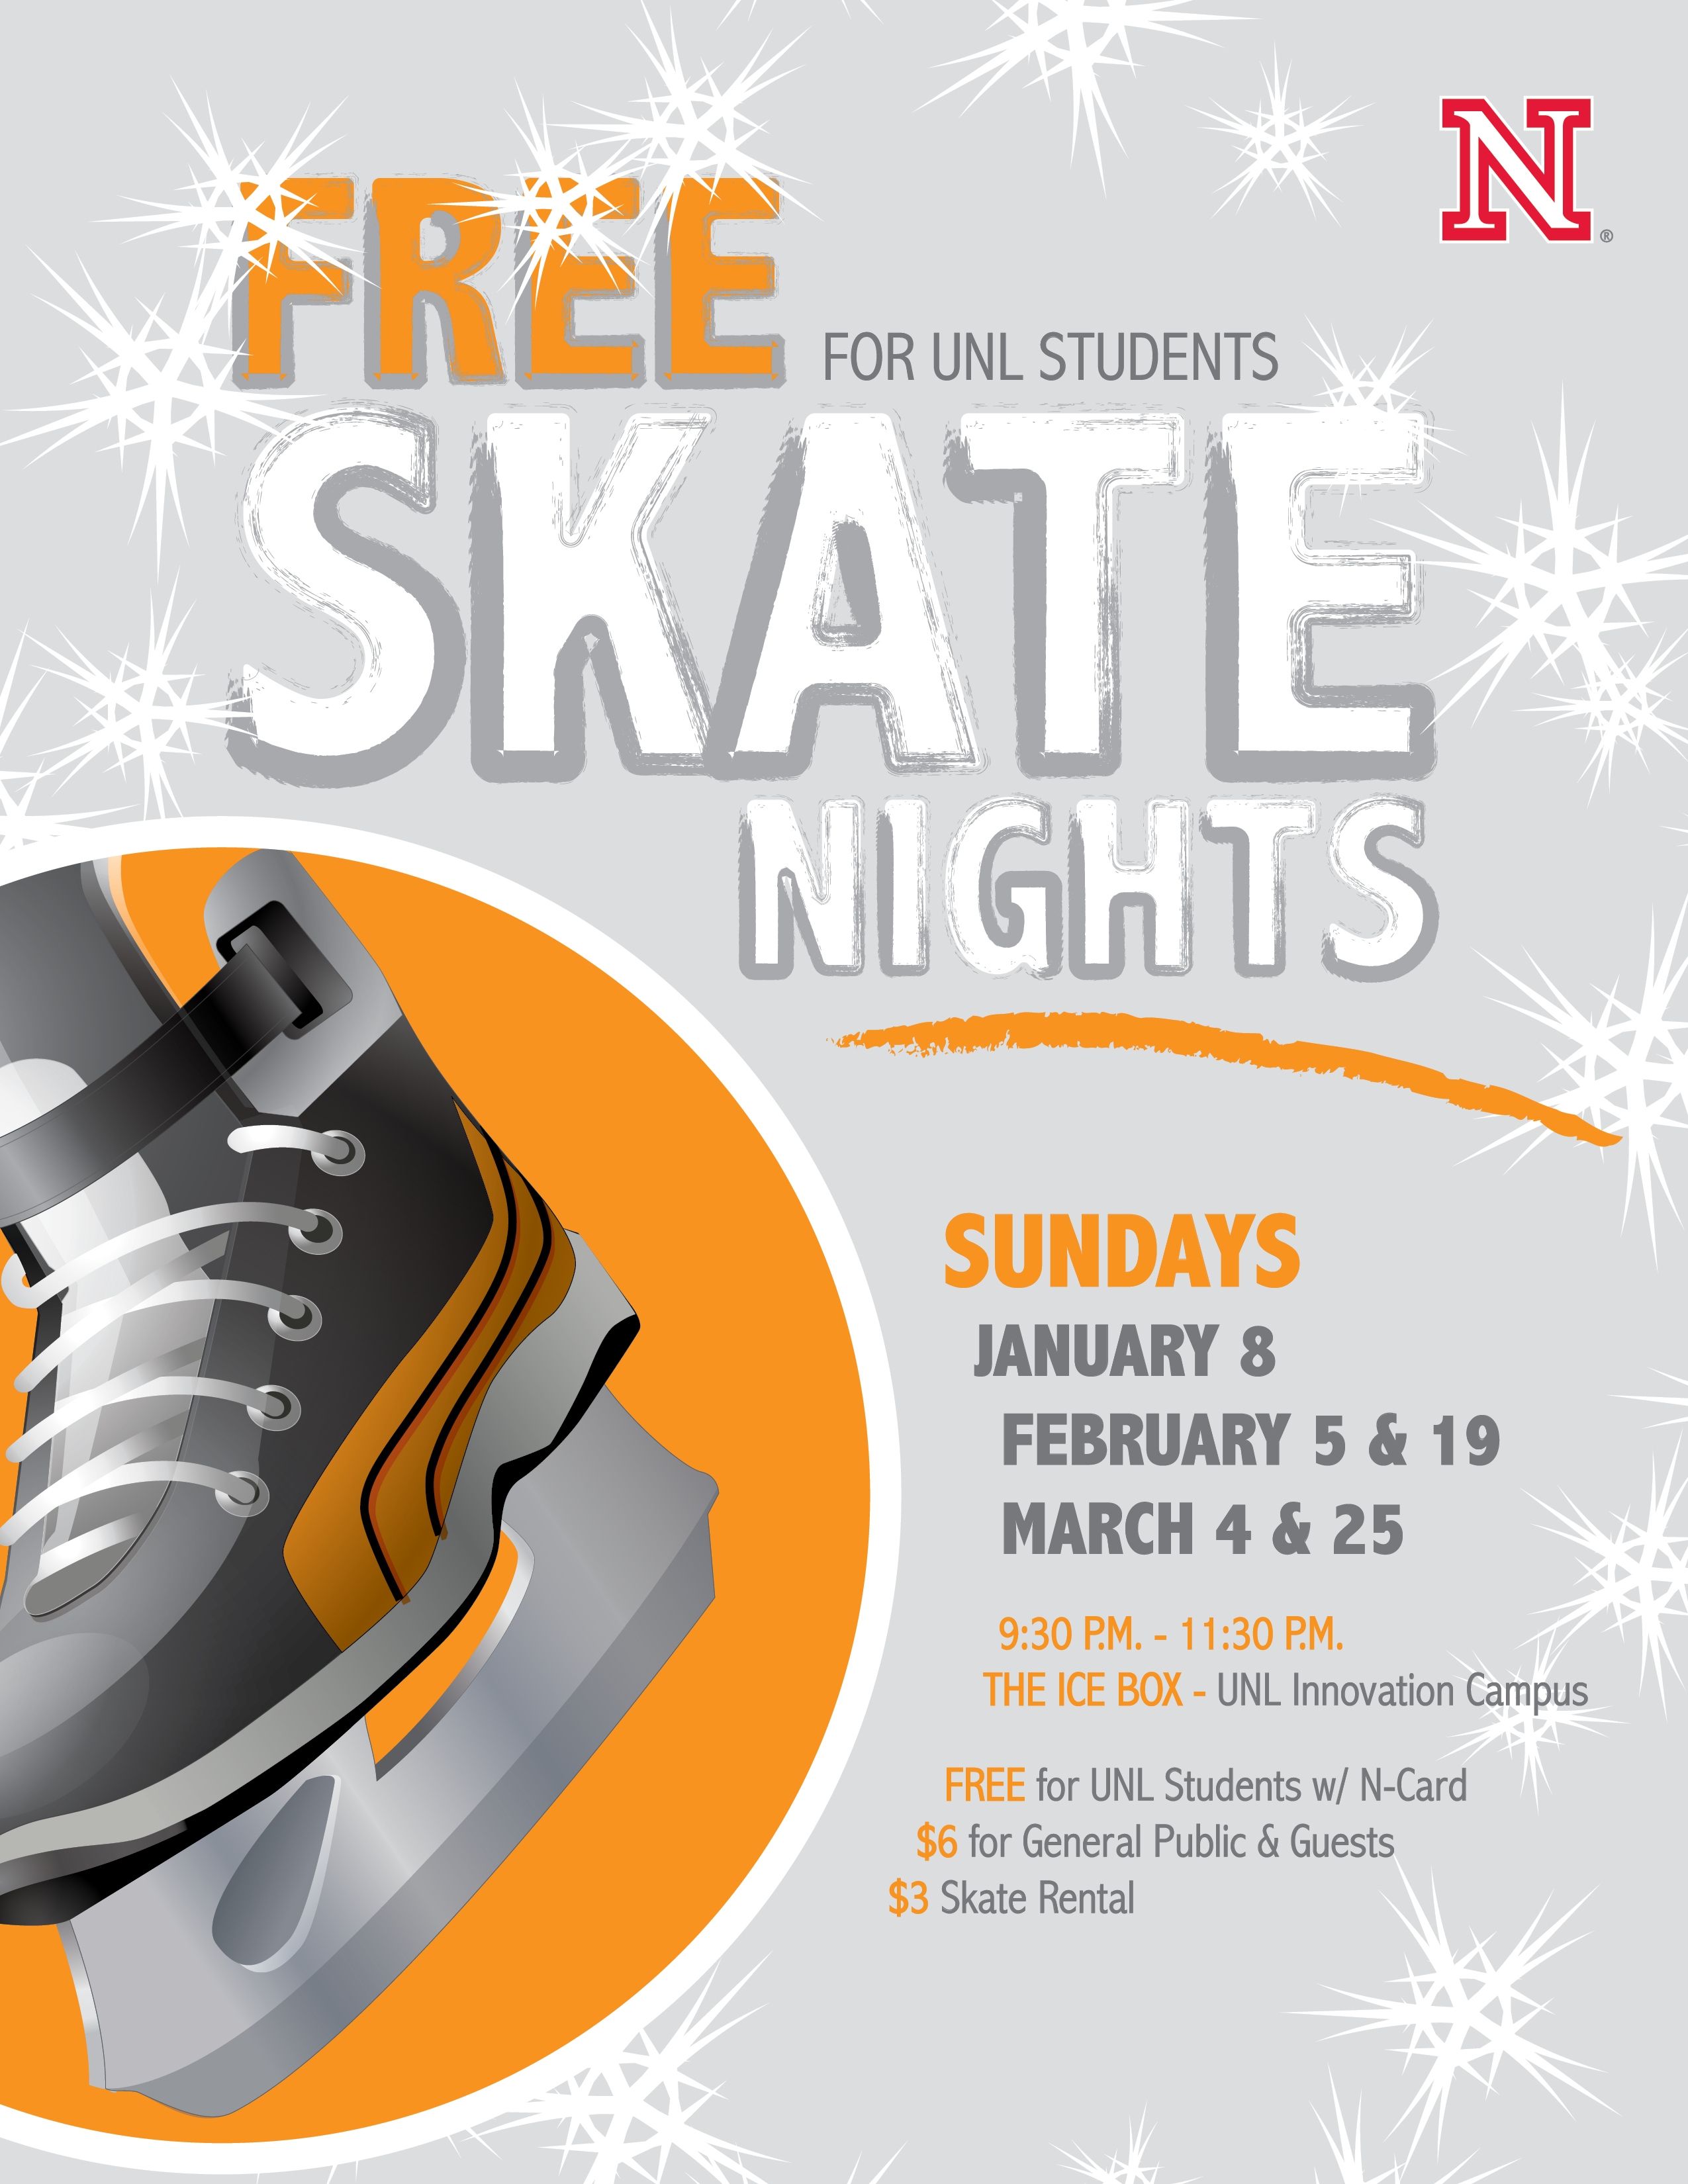 Free Skate Nights during the spring semster are Jan. 8, Feb. 5, Feb. 19, March 4, and March 25.